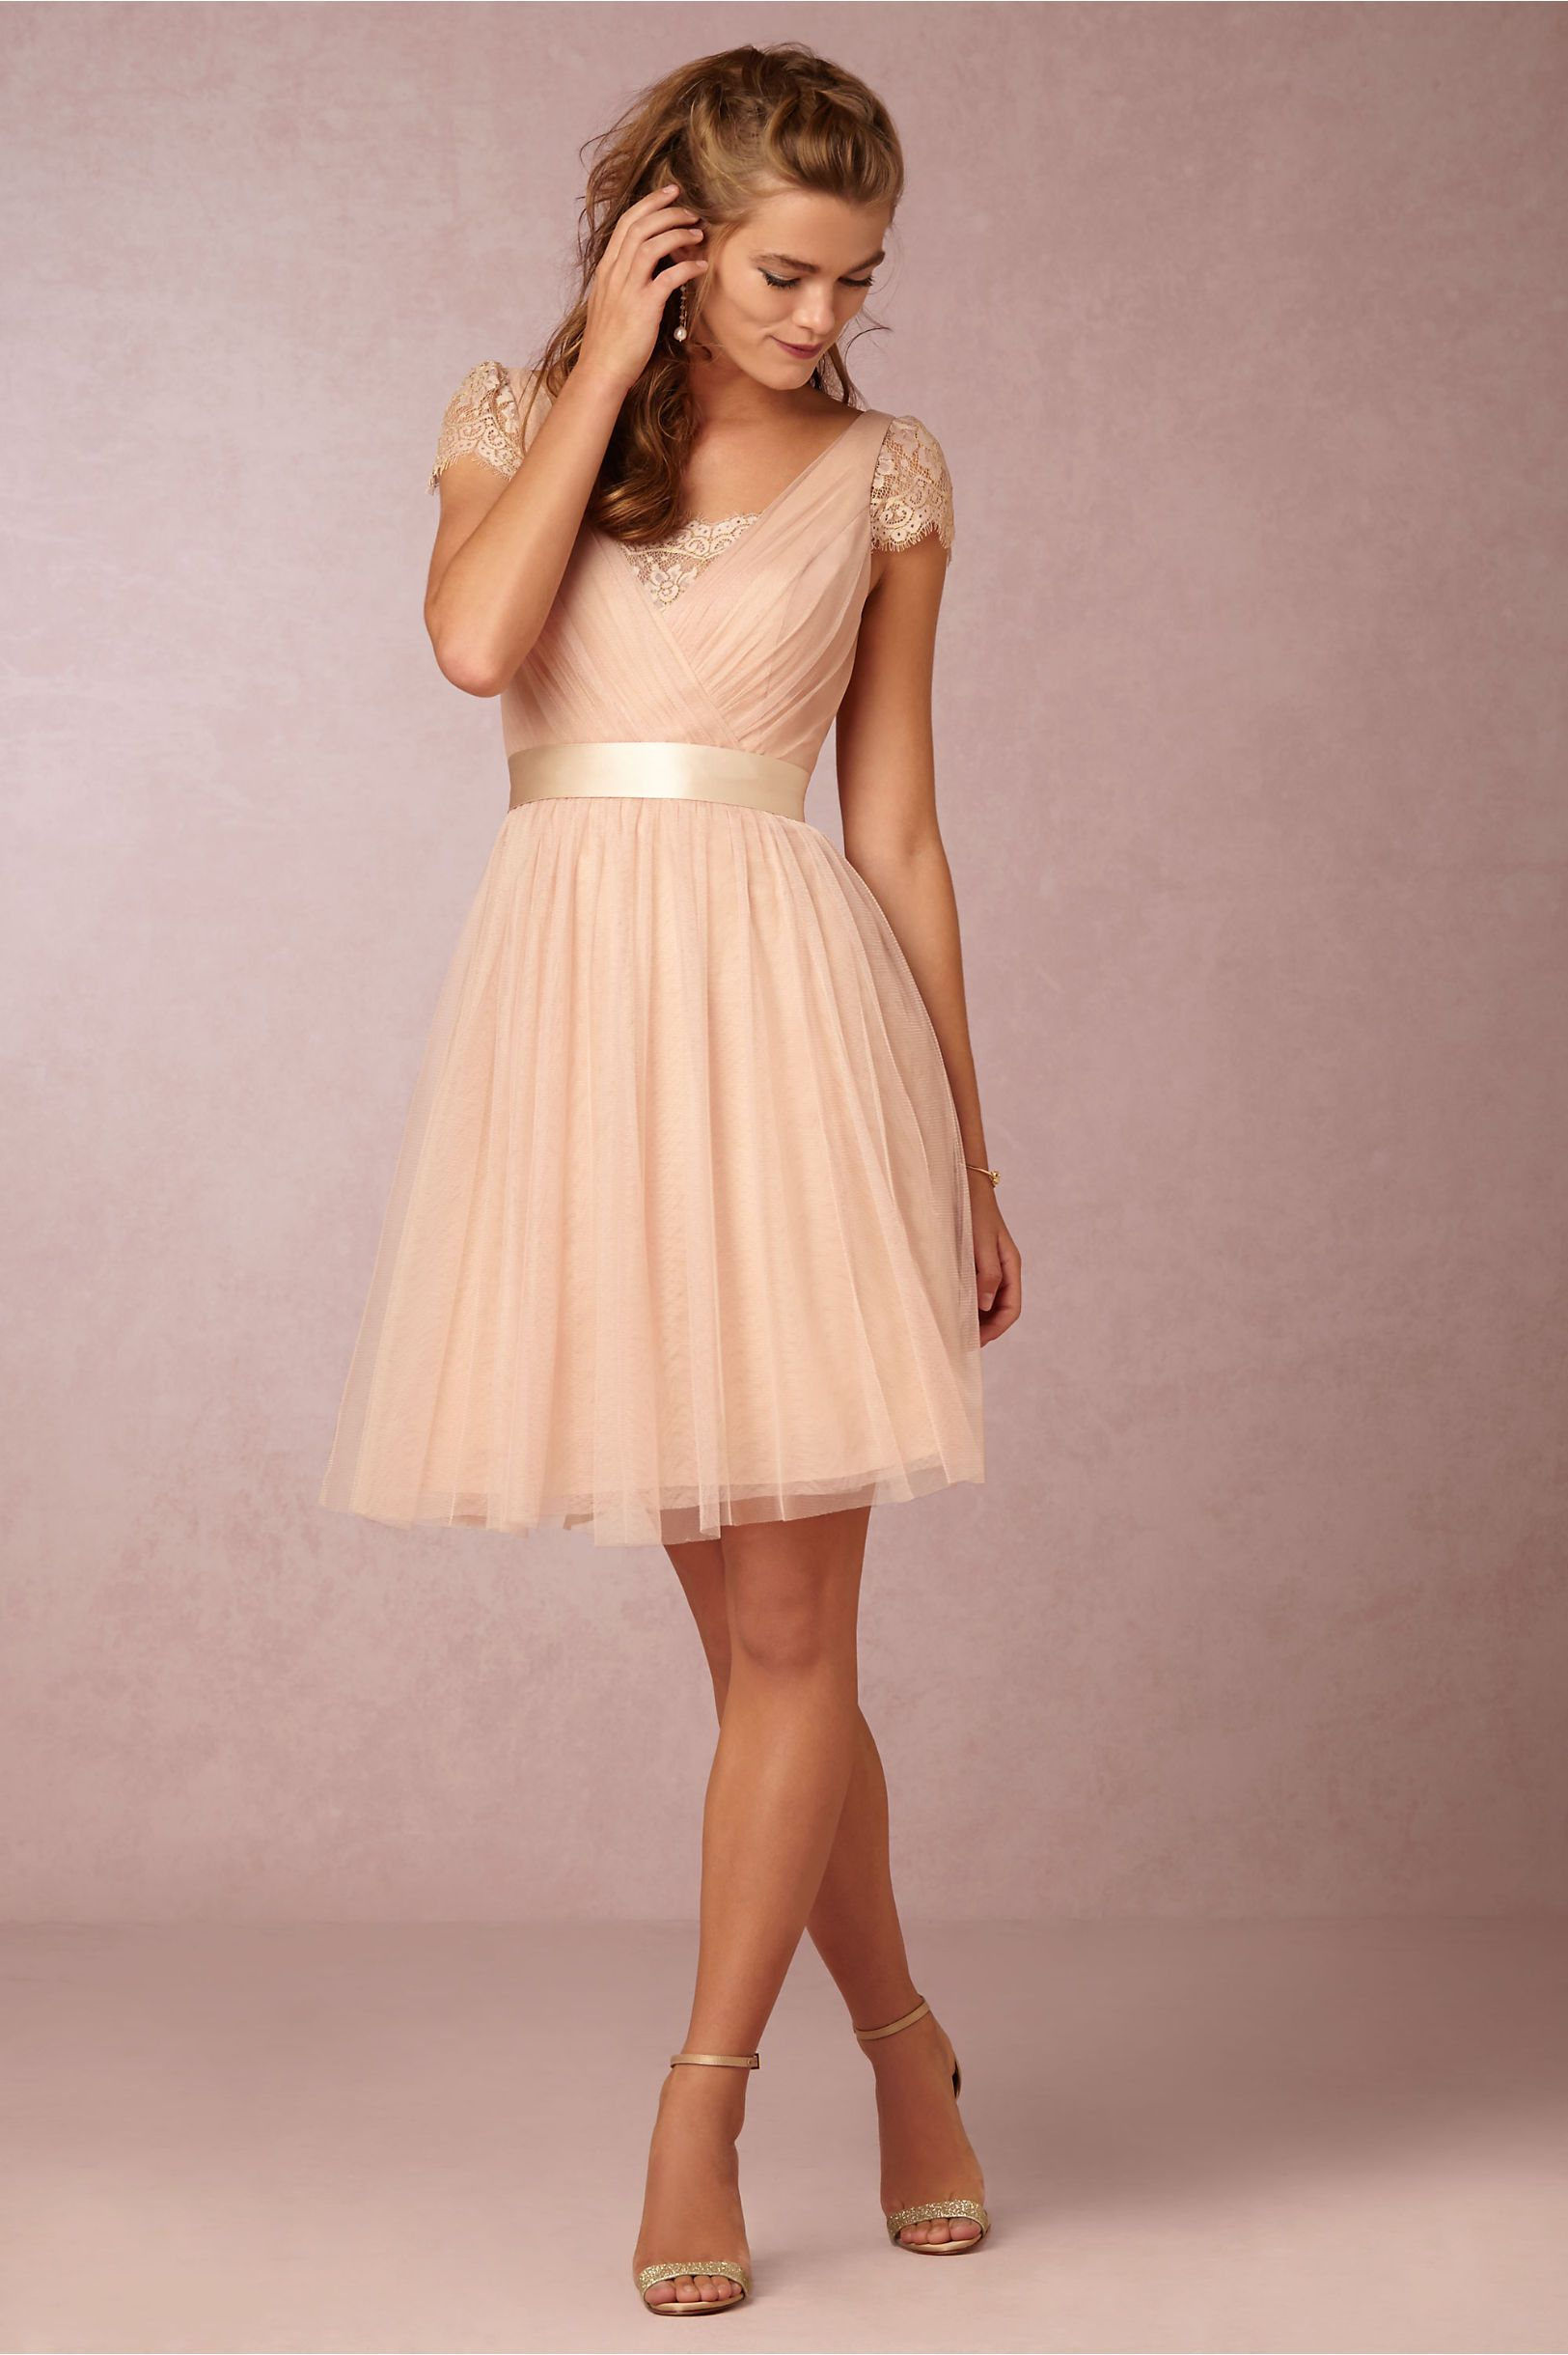 438fec695f05 Short Sleeved Lace Trimmed V Neck Knee Length Champagne Tulle Bridesmaid  Dress